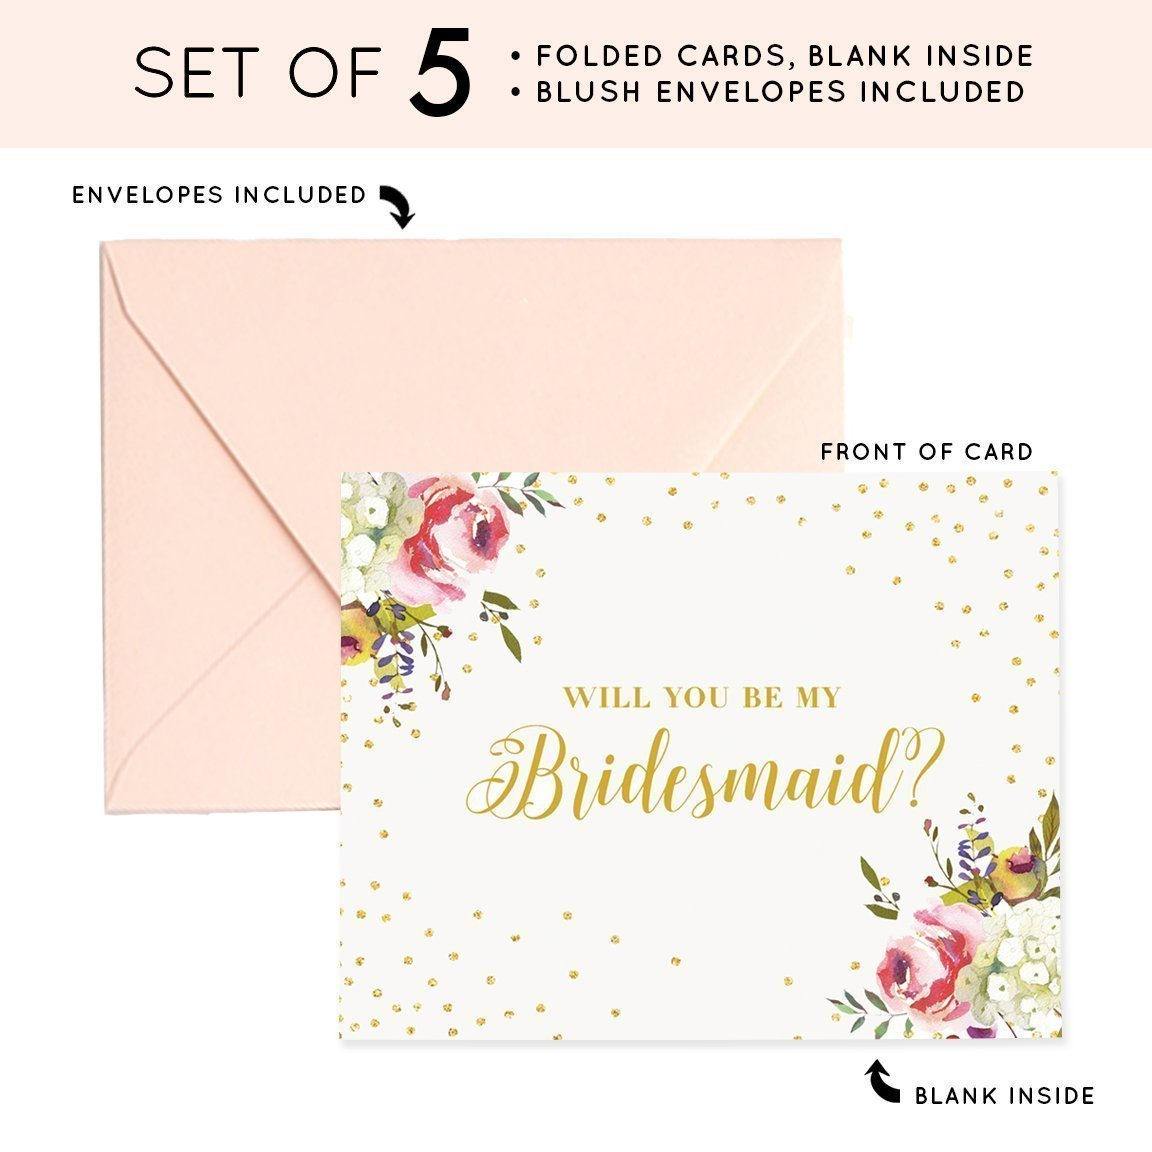 Will You Be My Bridesmaid Proposal Cards (Set of 5) Brides Maid Box Pack Five Cards with Luxe Blush Pink Envelopes Wedding Party Engagement Best Friend Sister CW0001-1